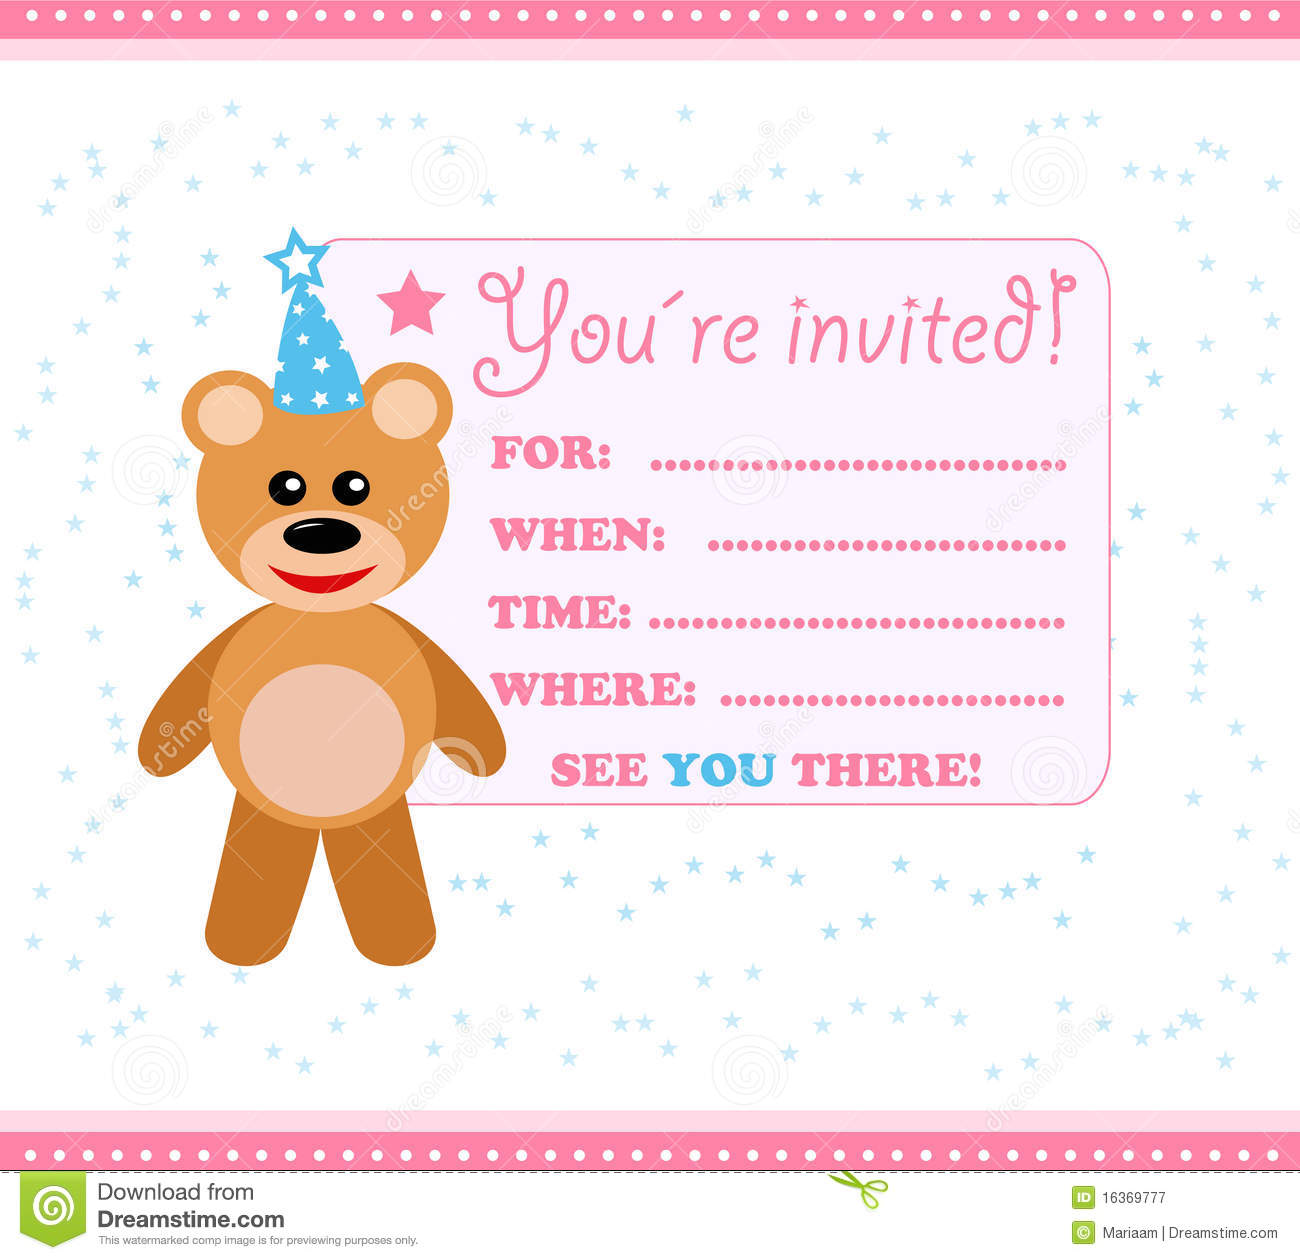 Invitation cards party jcmanagement invitation cards party bookmarktalkfo Image collections